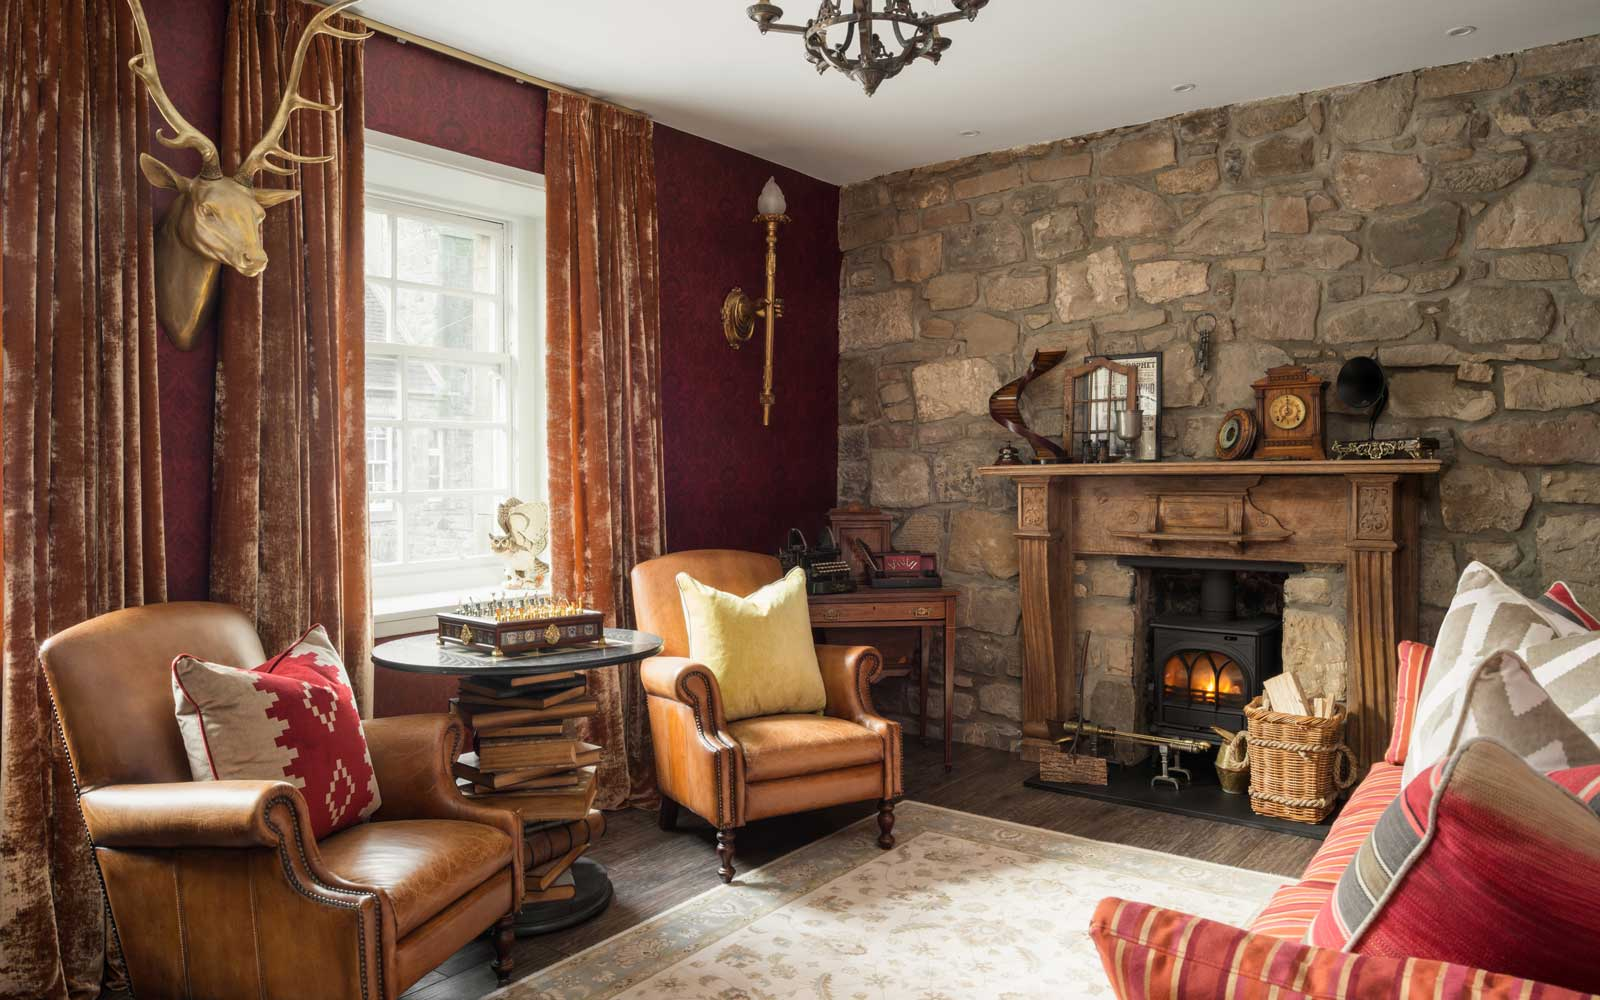 You Can Stay in This Harry Potter-themed Apartment in Scotland — Scottish Bedroom Decorating Ideas on scottish themed party ideas, scottish decorating style, scottish wedding ideas, scottish craft ideas, scottish interior decorating, scottish country decorating,